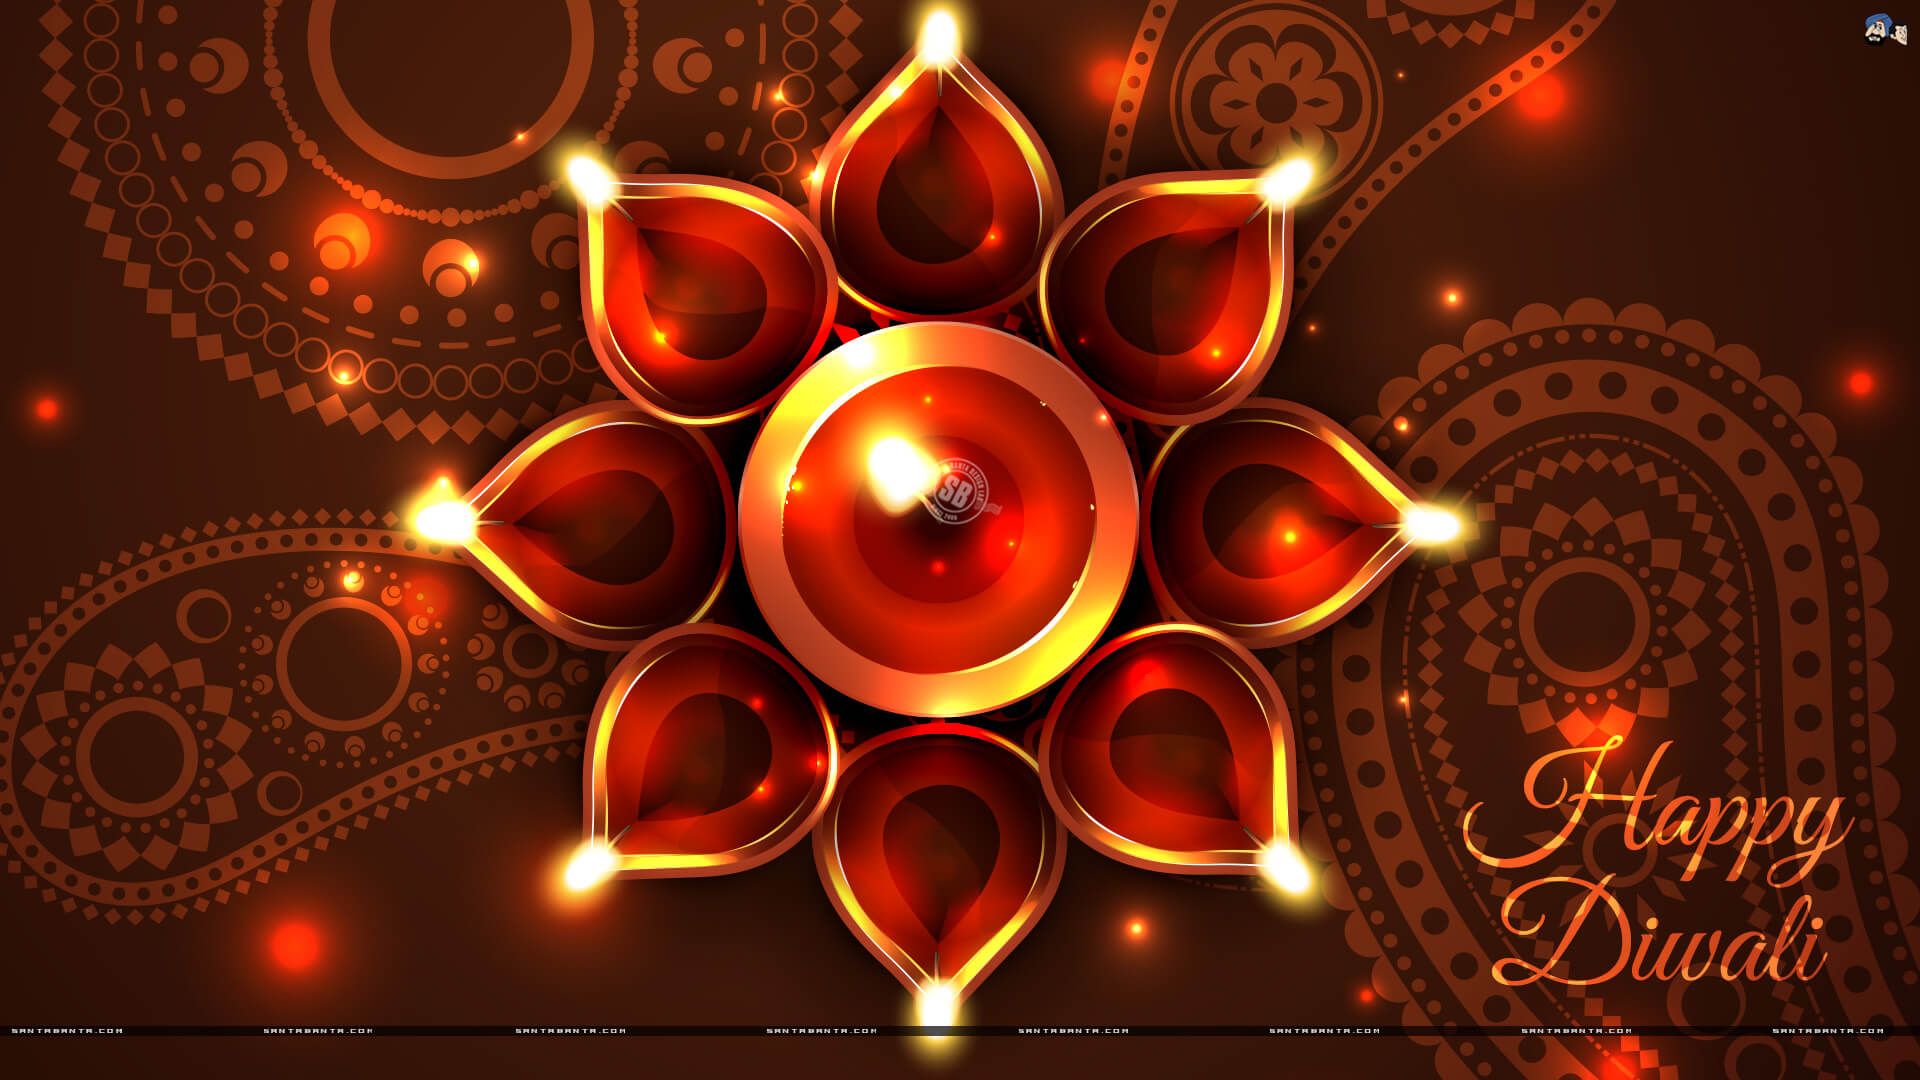 45 Beautiful HD Diwali Images and Wallpaper to feel the ...